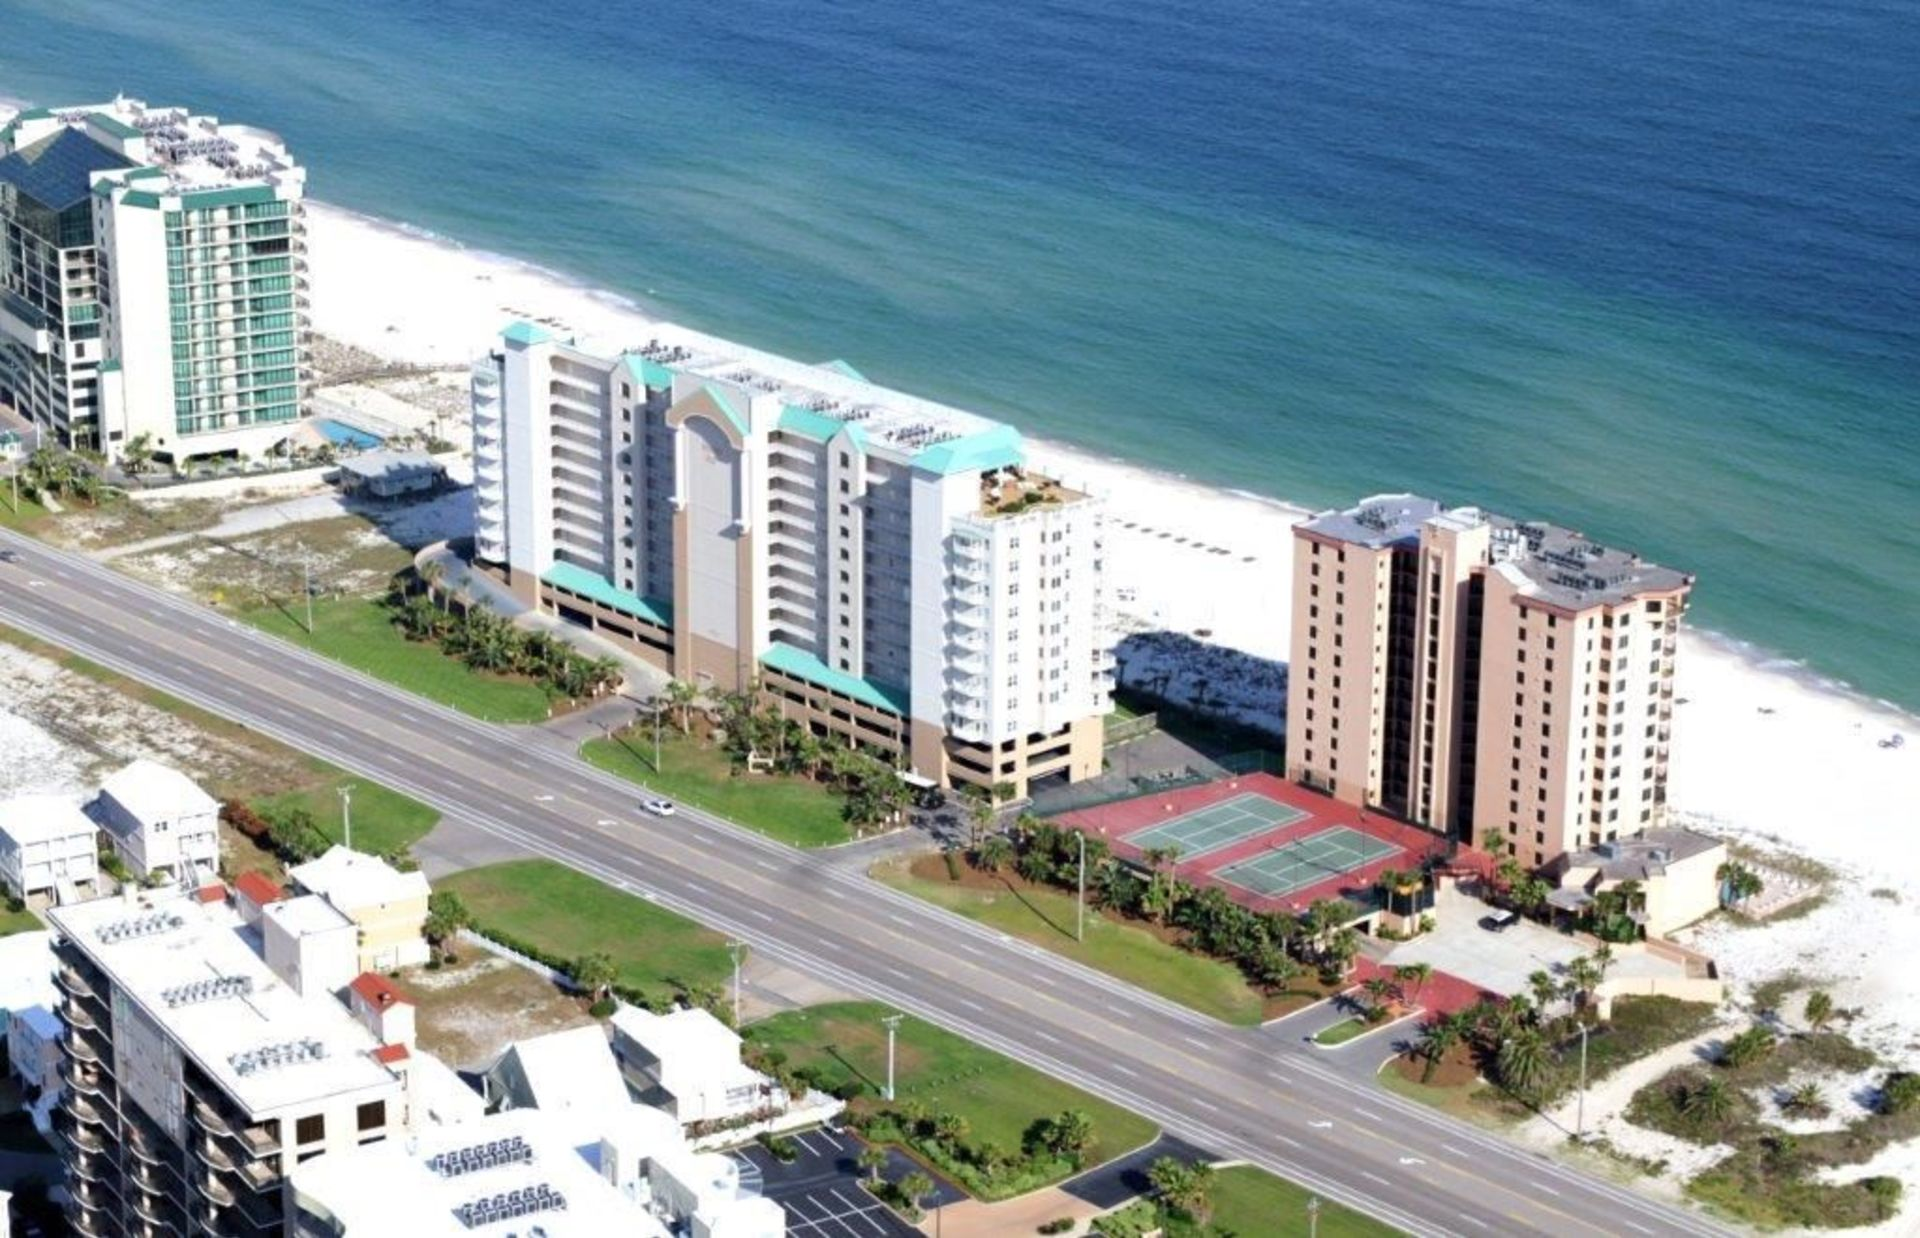 2 Bedroom Condos in Gulf Shores